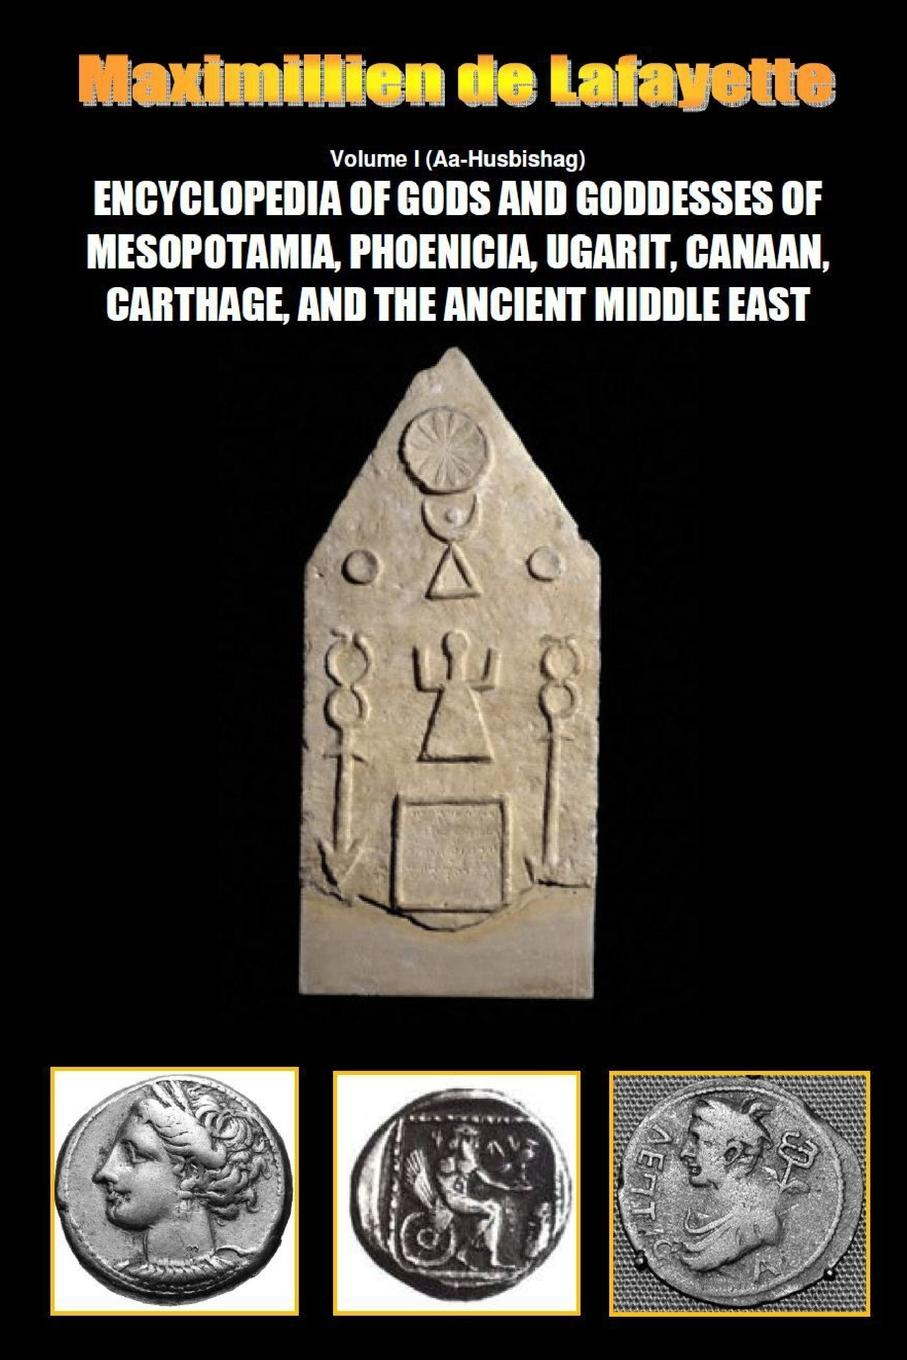 Maximillien De Lafayette Encyclopedia of Gods and Goddesses of Mesopotamia Phoenicia, Ugarit, Canaan, Carthage, and the Ancient Middle East. Vol.I